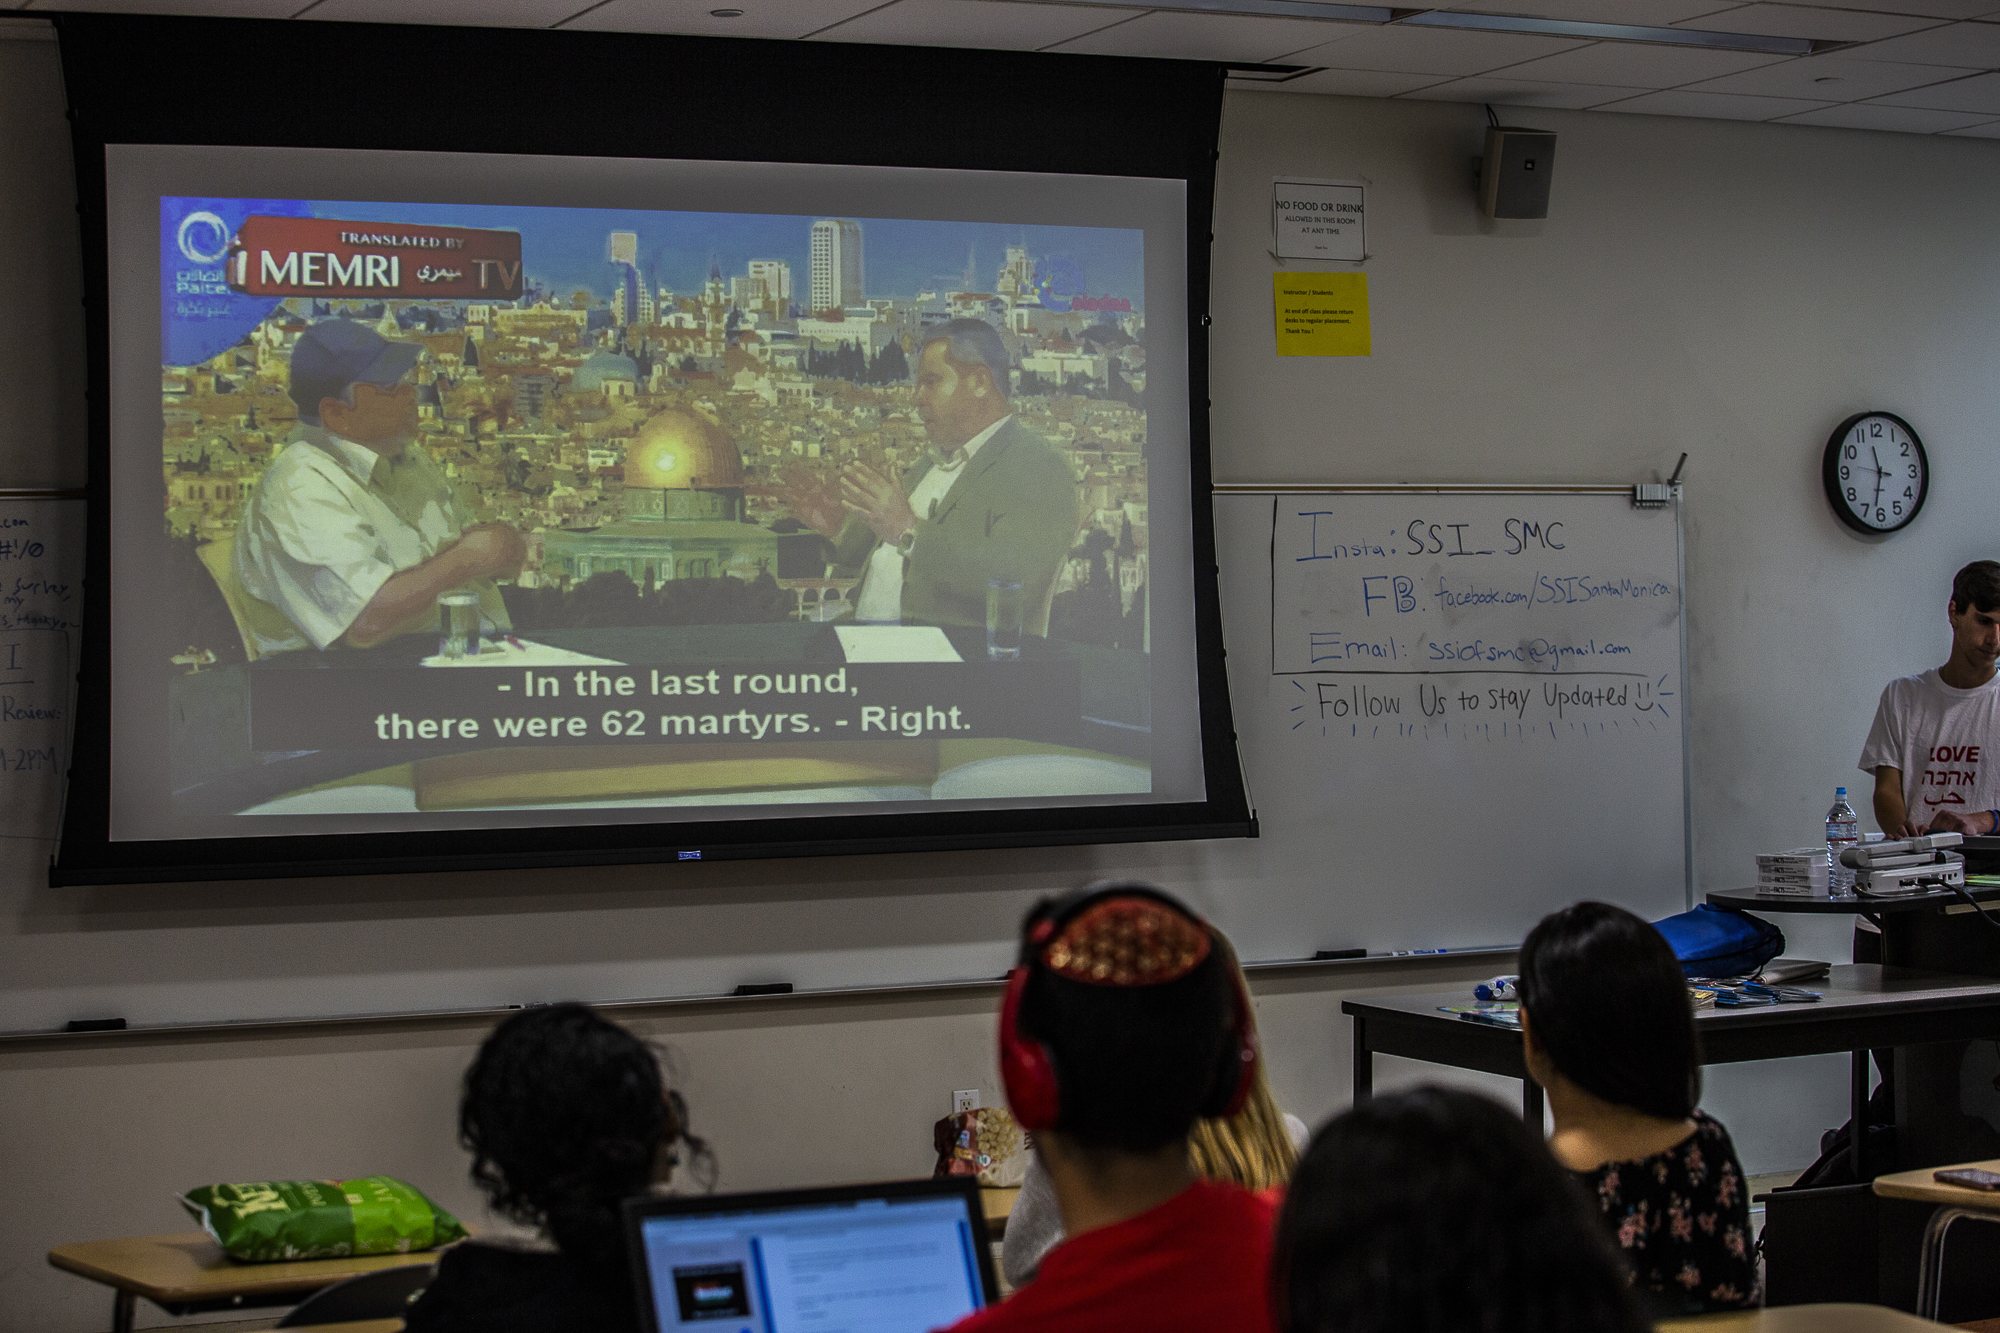 A group of predominantly Israel-American students gather at a meeting of 'Students Supporting Israel' to watch footage distributed by MEMRI, the MIddle Eastern Media Research Initiative, a non-profit which promotes itself as neutral but has been charged by critics with disseminating incomplete and selective translations while promoting the views of Islamic extremists in order to depict the Arab world in a negative light. Thursday May 24 2018 in Santa Monica College, Santa Monica CA photo by Ruth Iorio